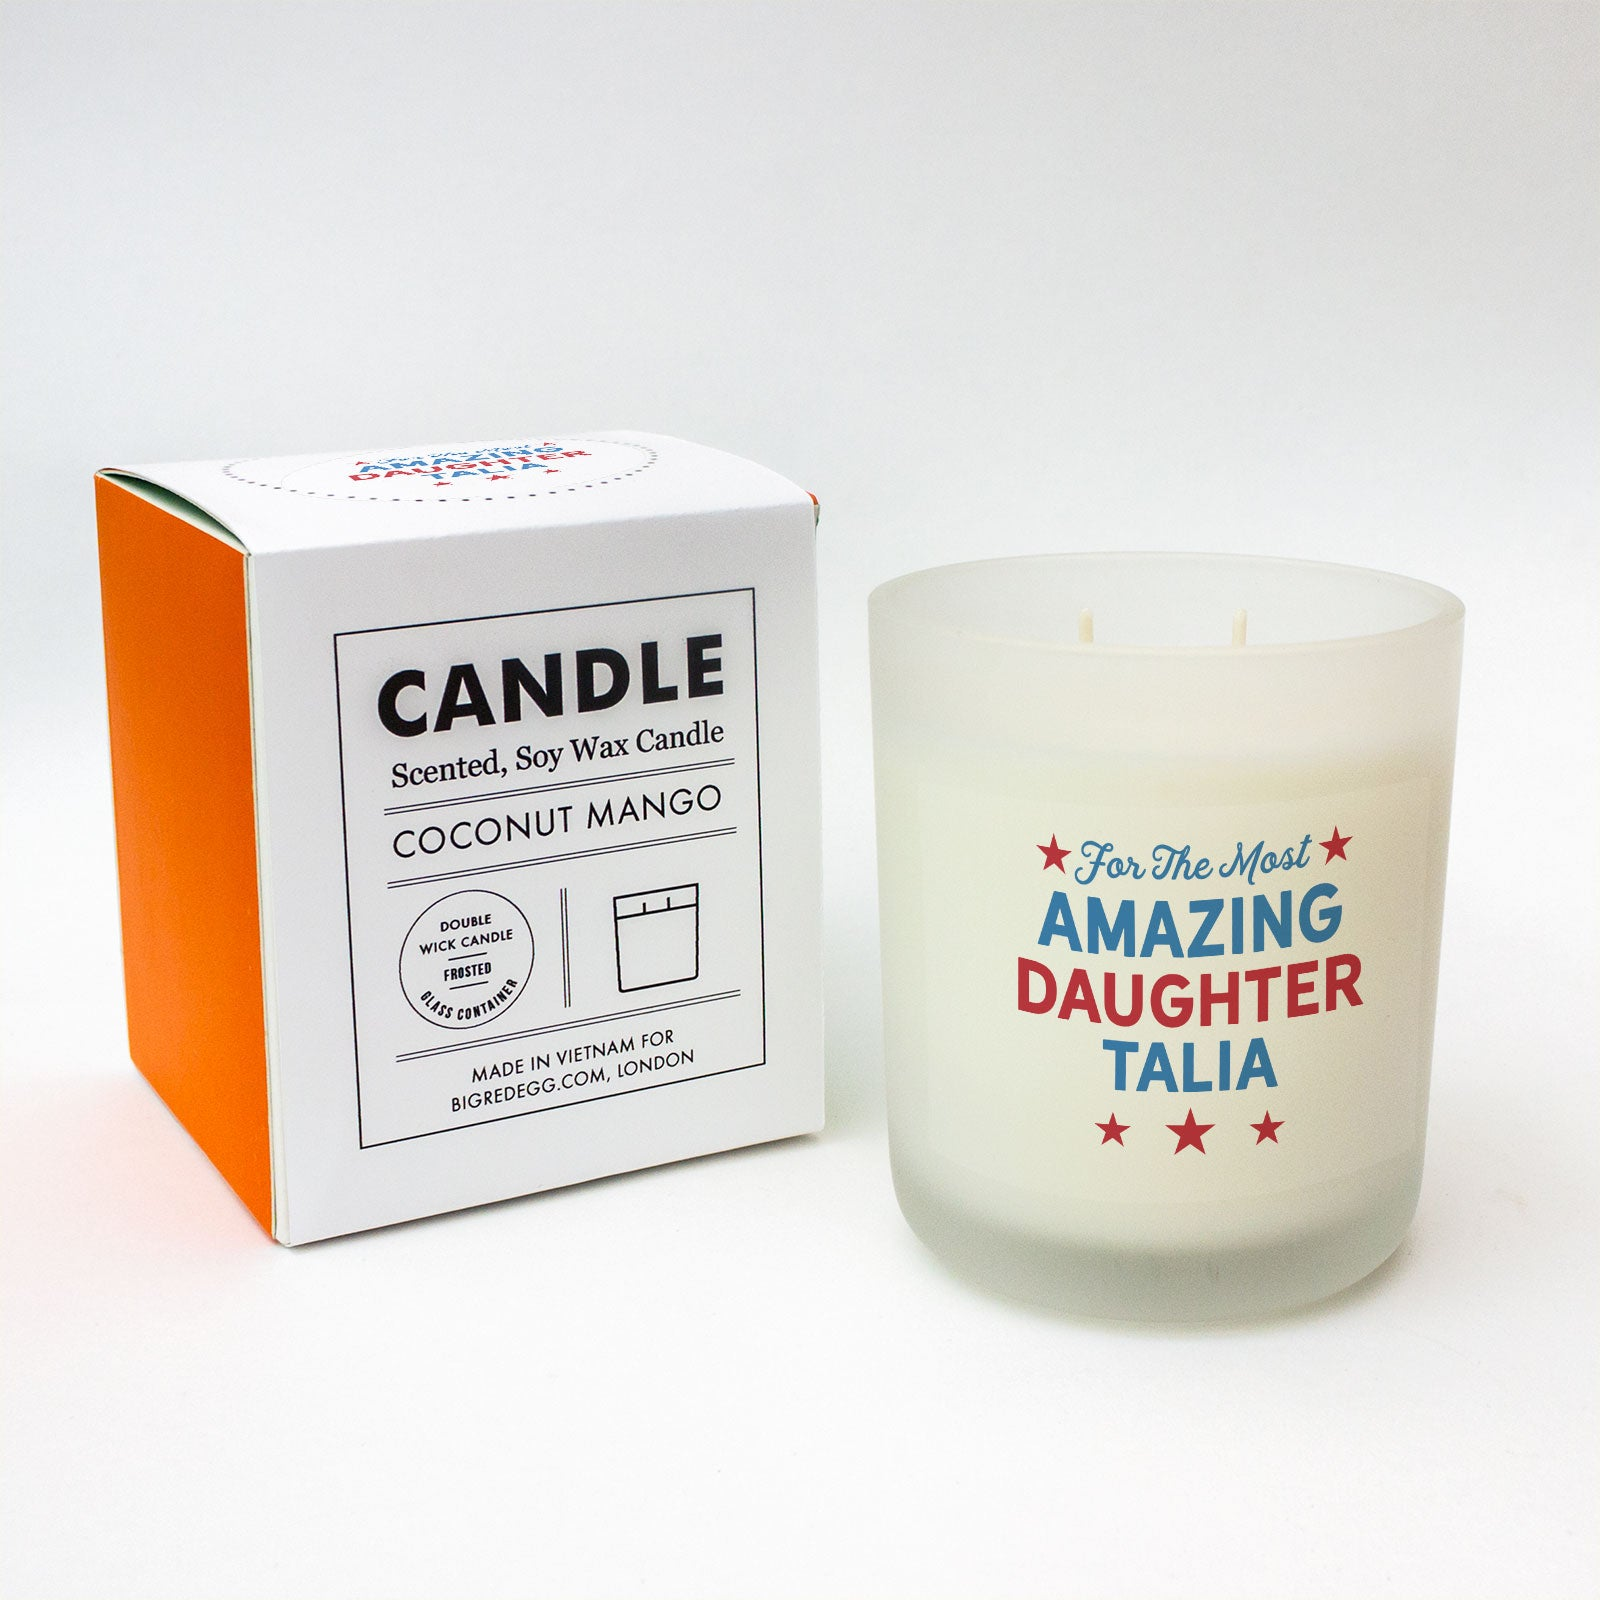 For The Most Amazing Custom Text Candle